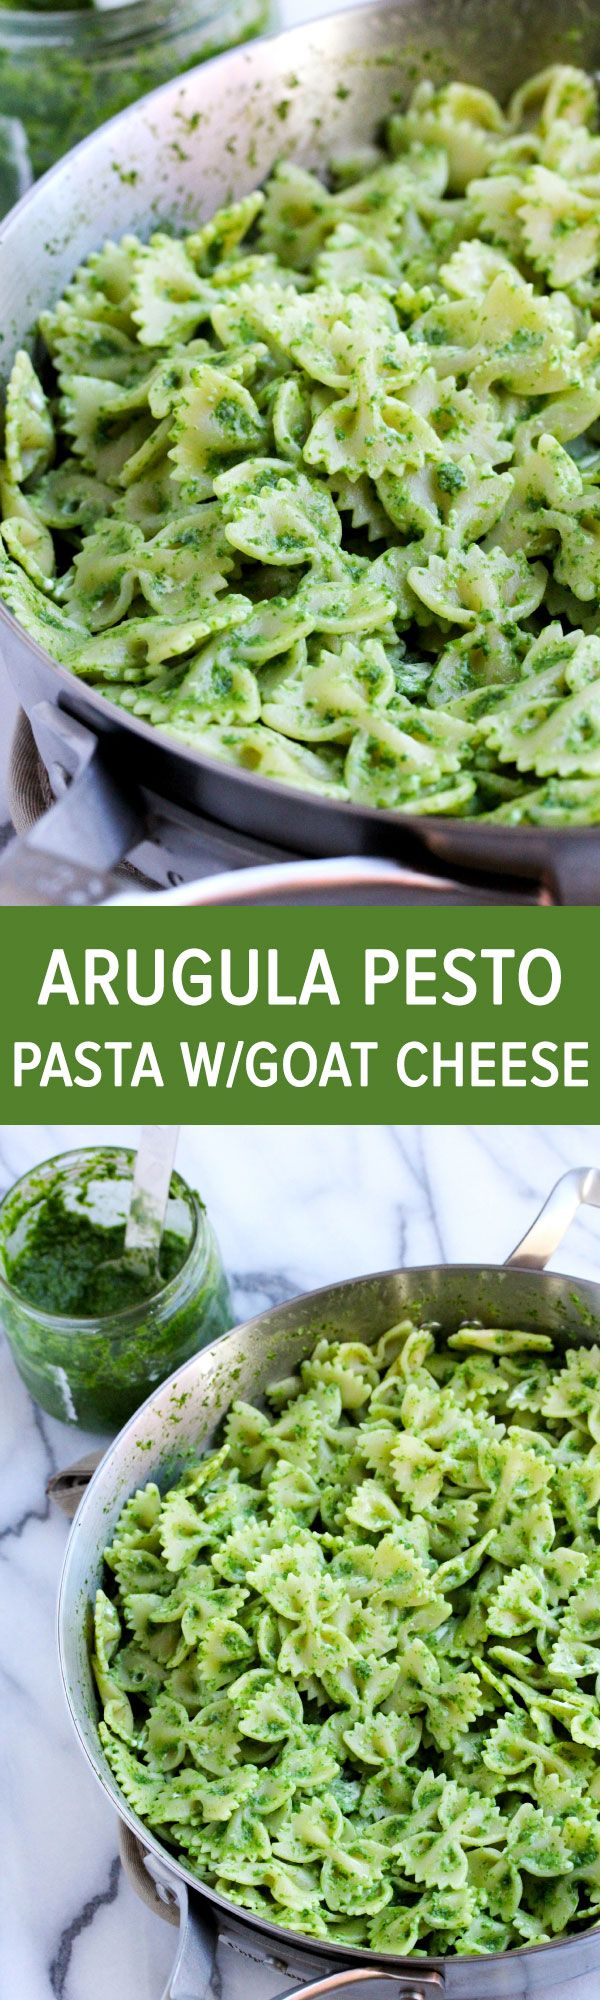 Arugula pesto bowtie pasta topped with creamy goat cheese for a dish that is light and full of flavor